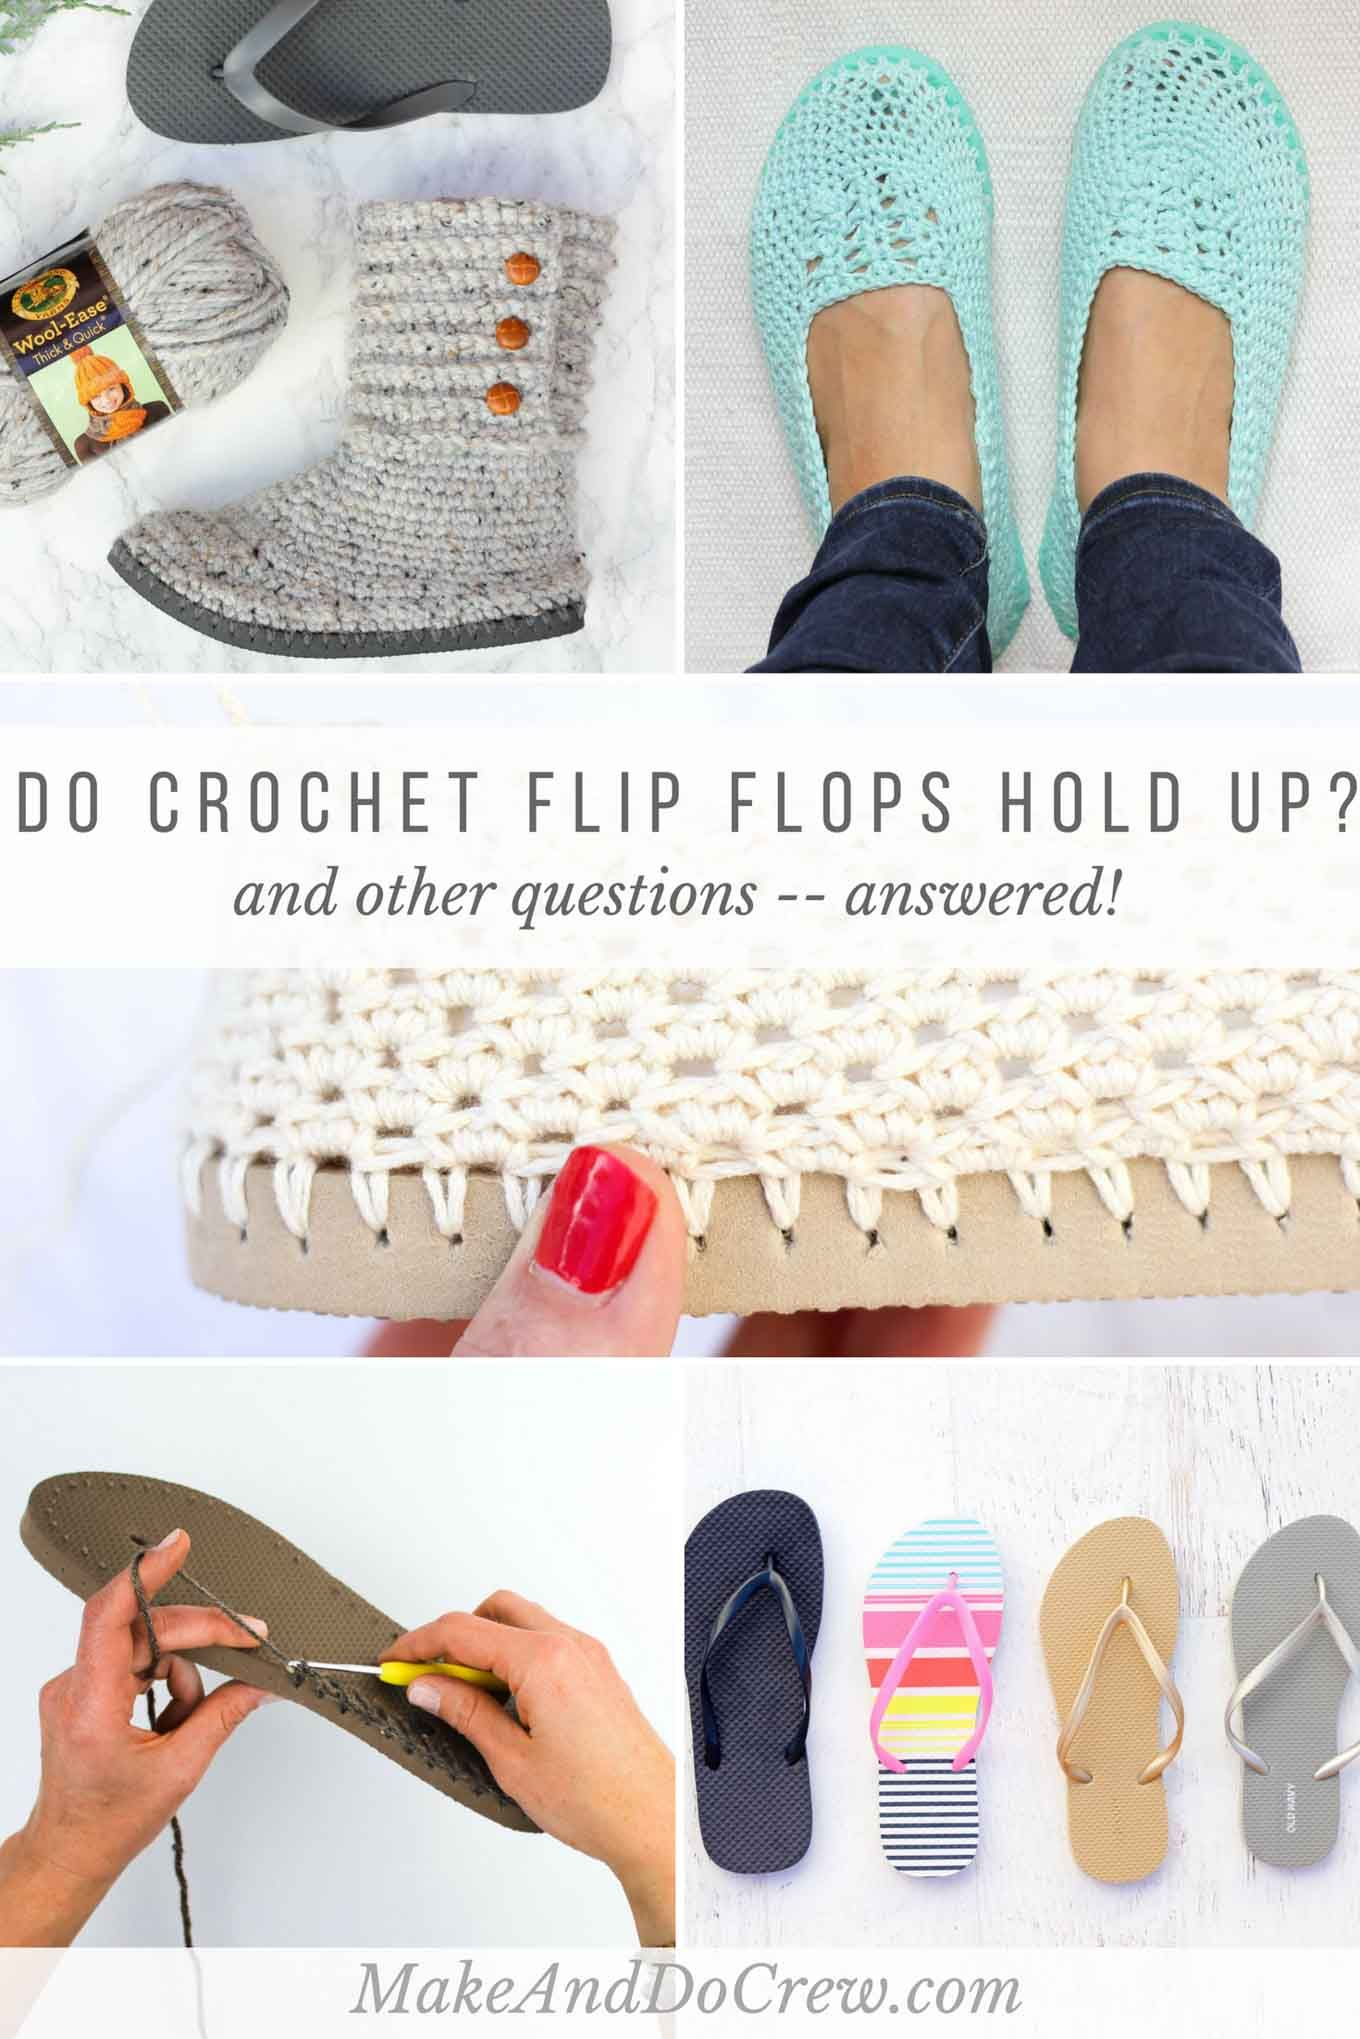 How To Crochet On Flip Flops (And will they fall apart?!) | barfuß ...